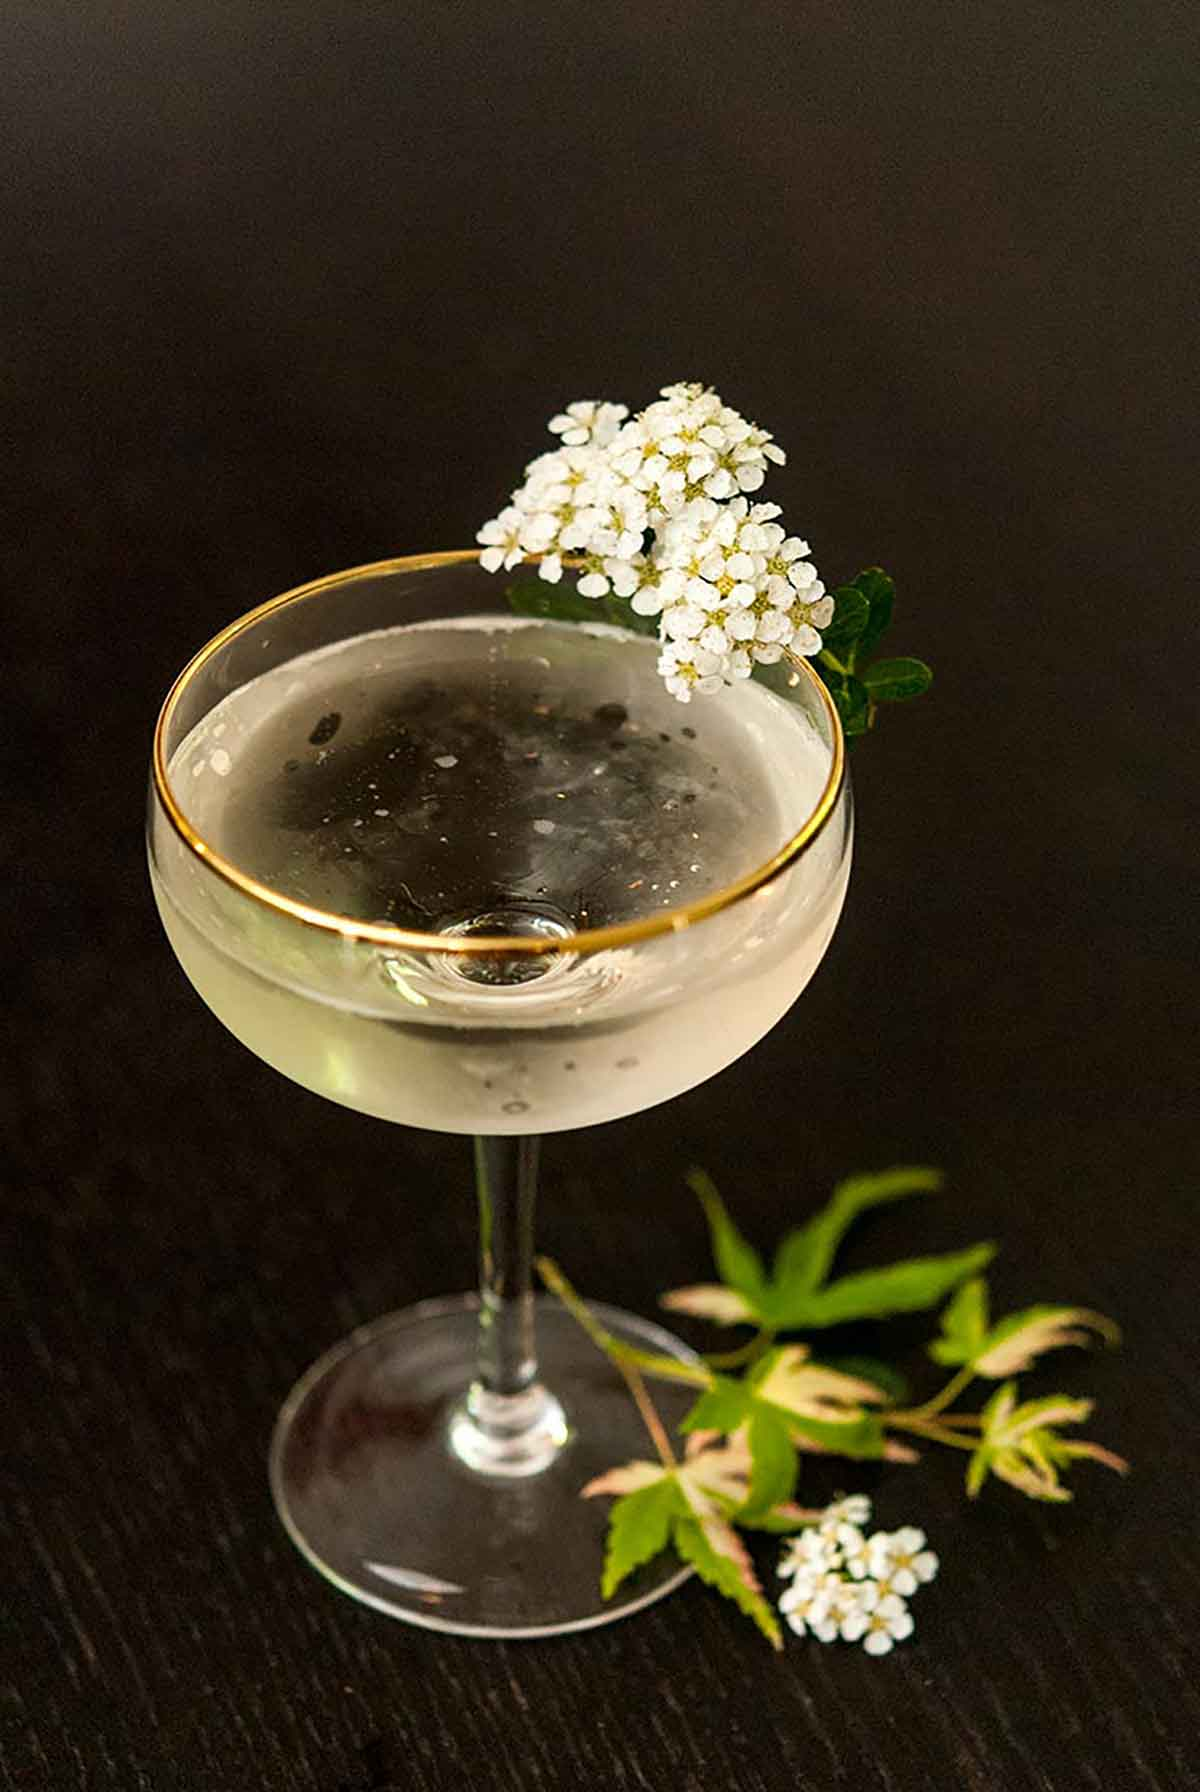 A cocktail in a coup glass, garnished with small flowers, with small autumn leaves at its base on a black table.